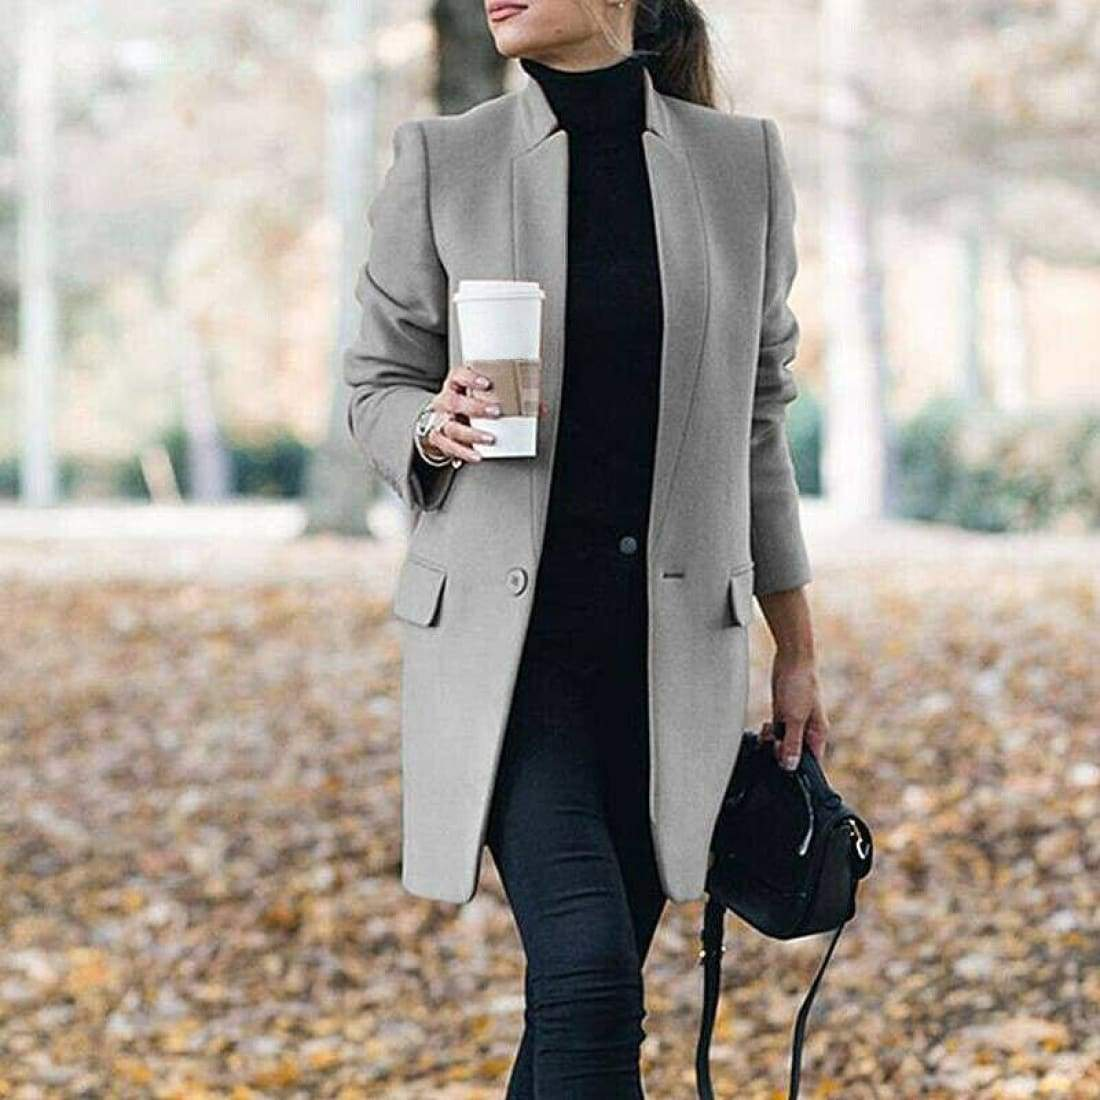 Elegant Wool Coat with Stand-up Collar - Gray / S